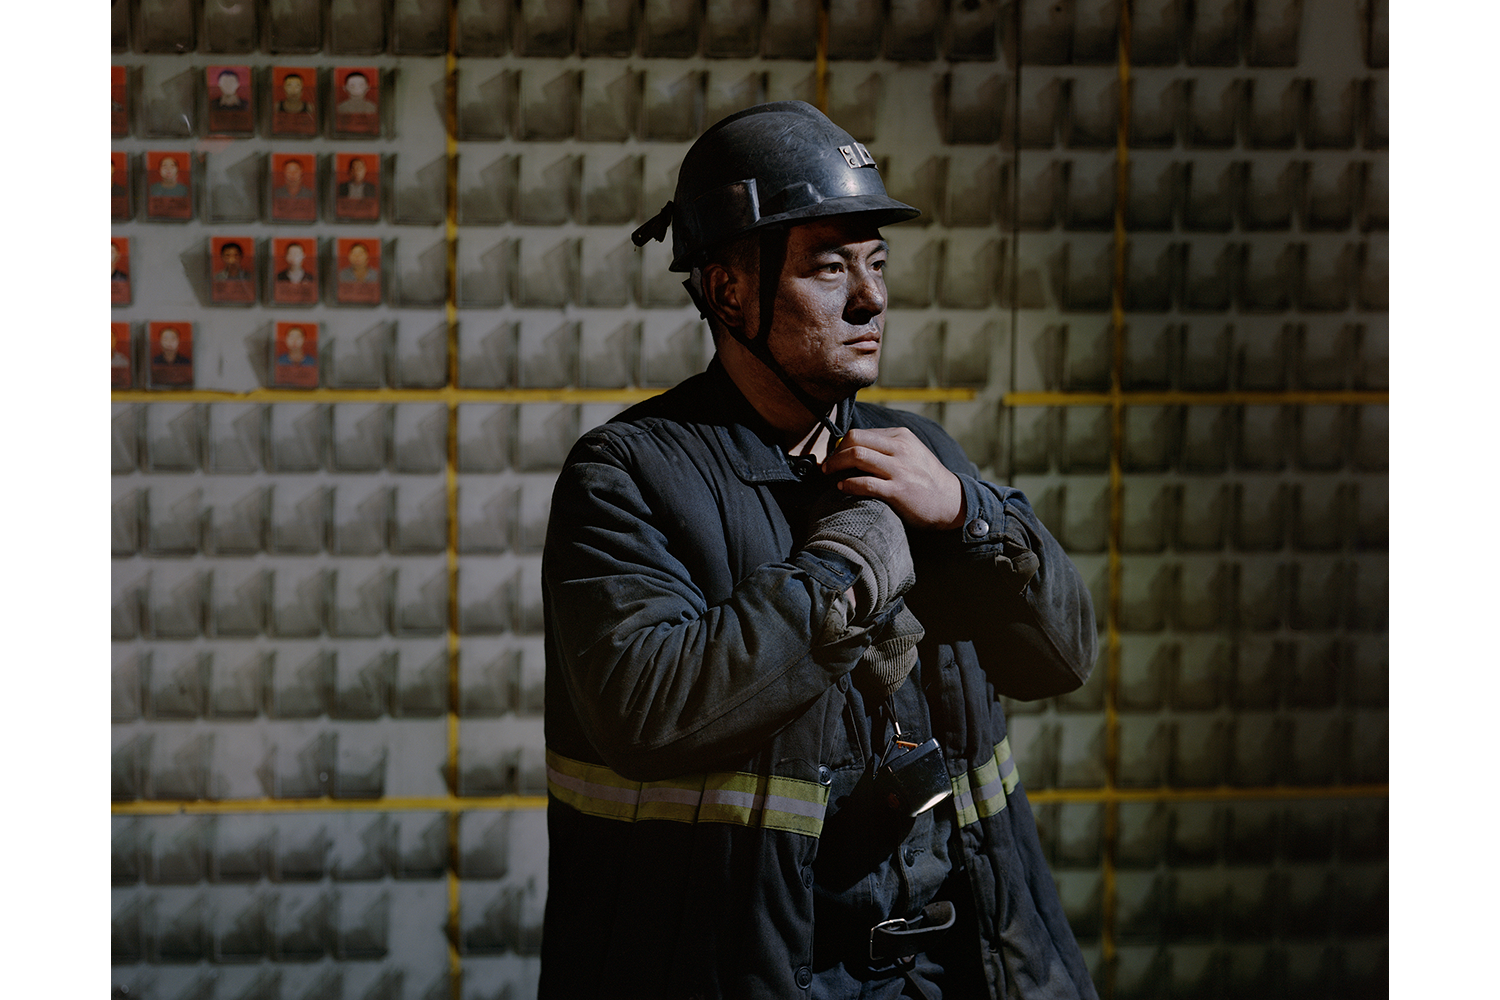 May 3, 31-year-old Yu Cunjiang takes off his safety helmet and gets ready for breakfast after working a 14-hour night shift in the Jinhuagong coal mine in Datong, Shanxi province. Shanxi, whose economy once relied heavily on its mineral resources, has shuttered 52 coal mines in the past two years in order to combat pollution, laying off thousands of workers in the process. (Li Junhui)